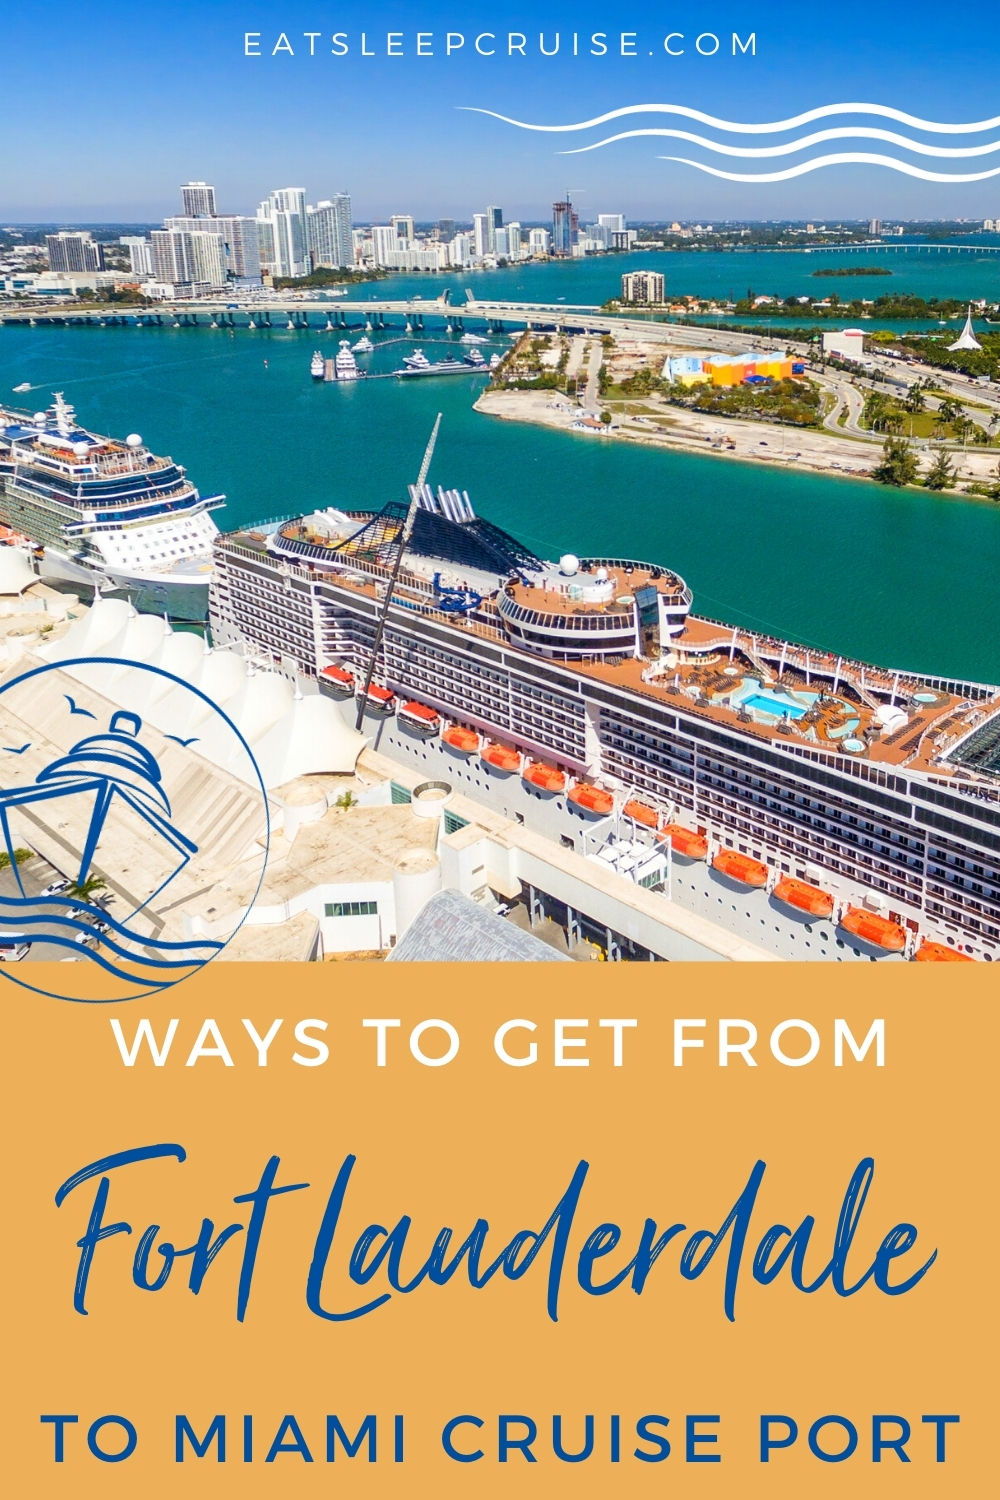 Best Ways to Get From the Fort Lauderdale Airport to the Miami Cruise Port